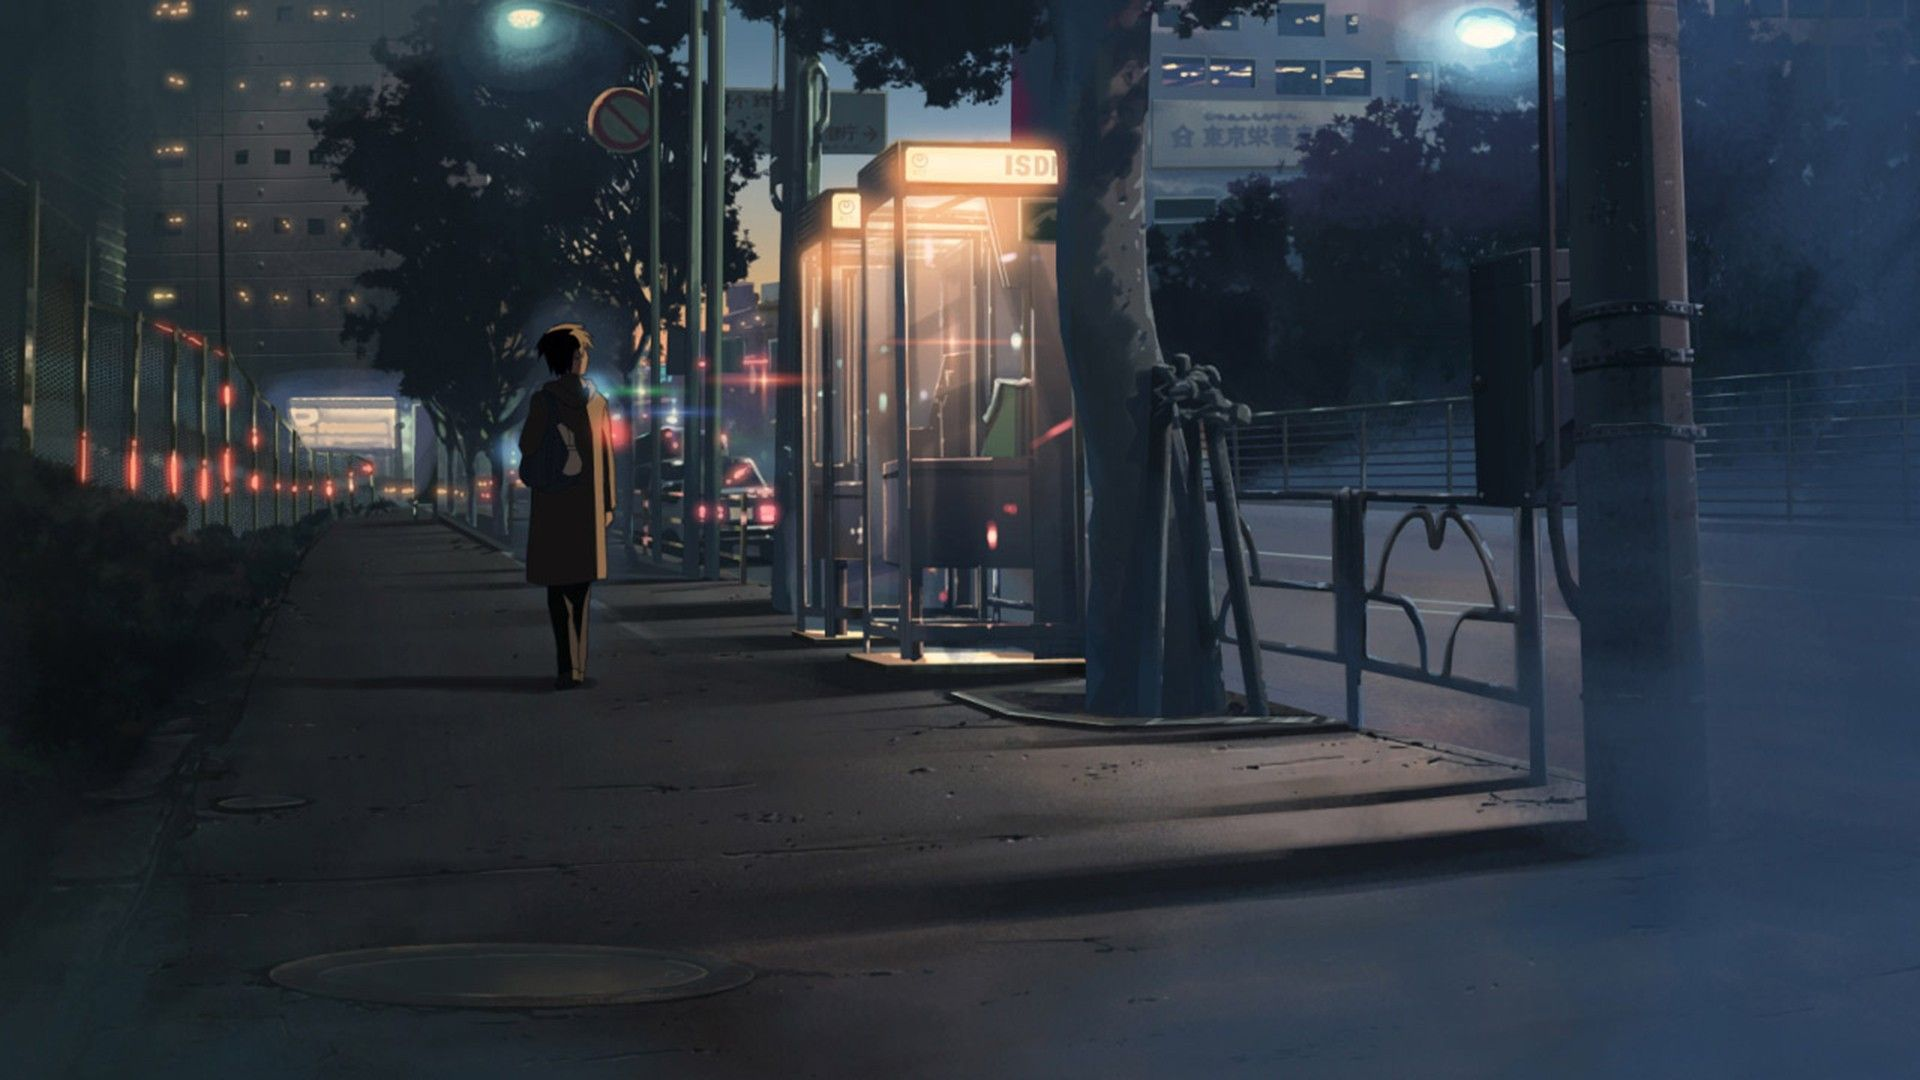 Ket Qua Hinh Anh Cho Lonely Anime Wallpapers Hd